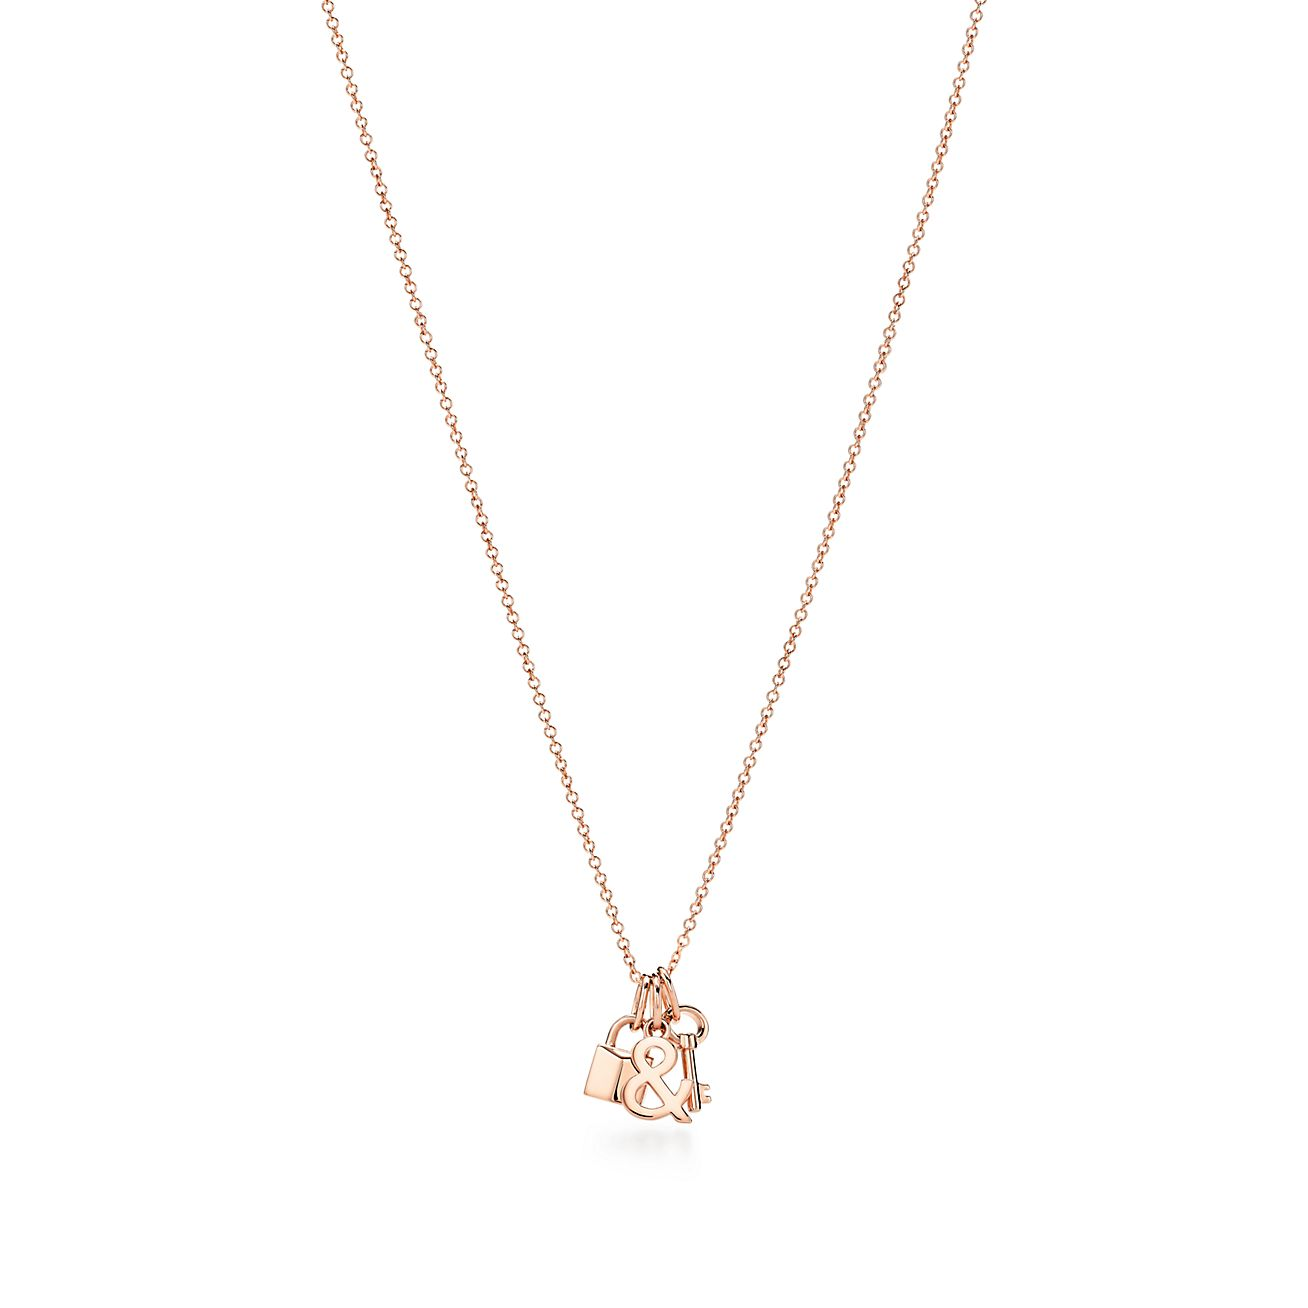 Tiffany Love Lock And Key Pendant In 18k Rose Gold Tiffany Co